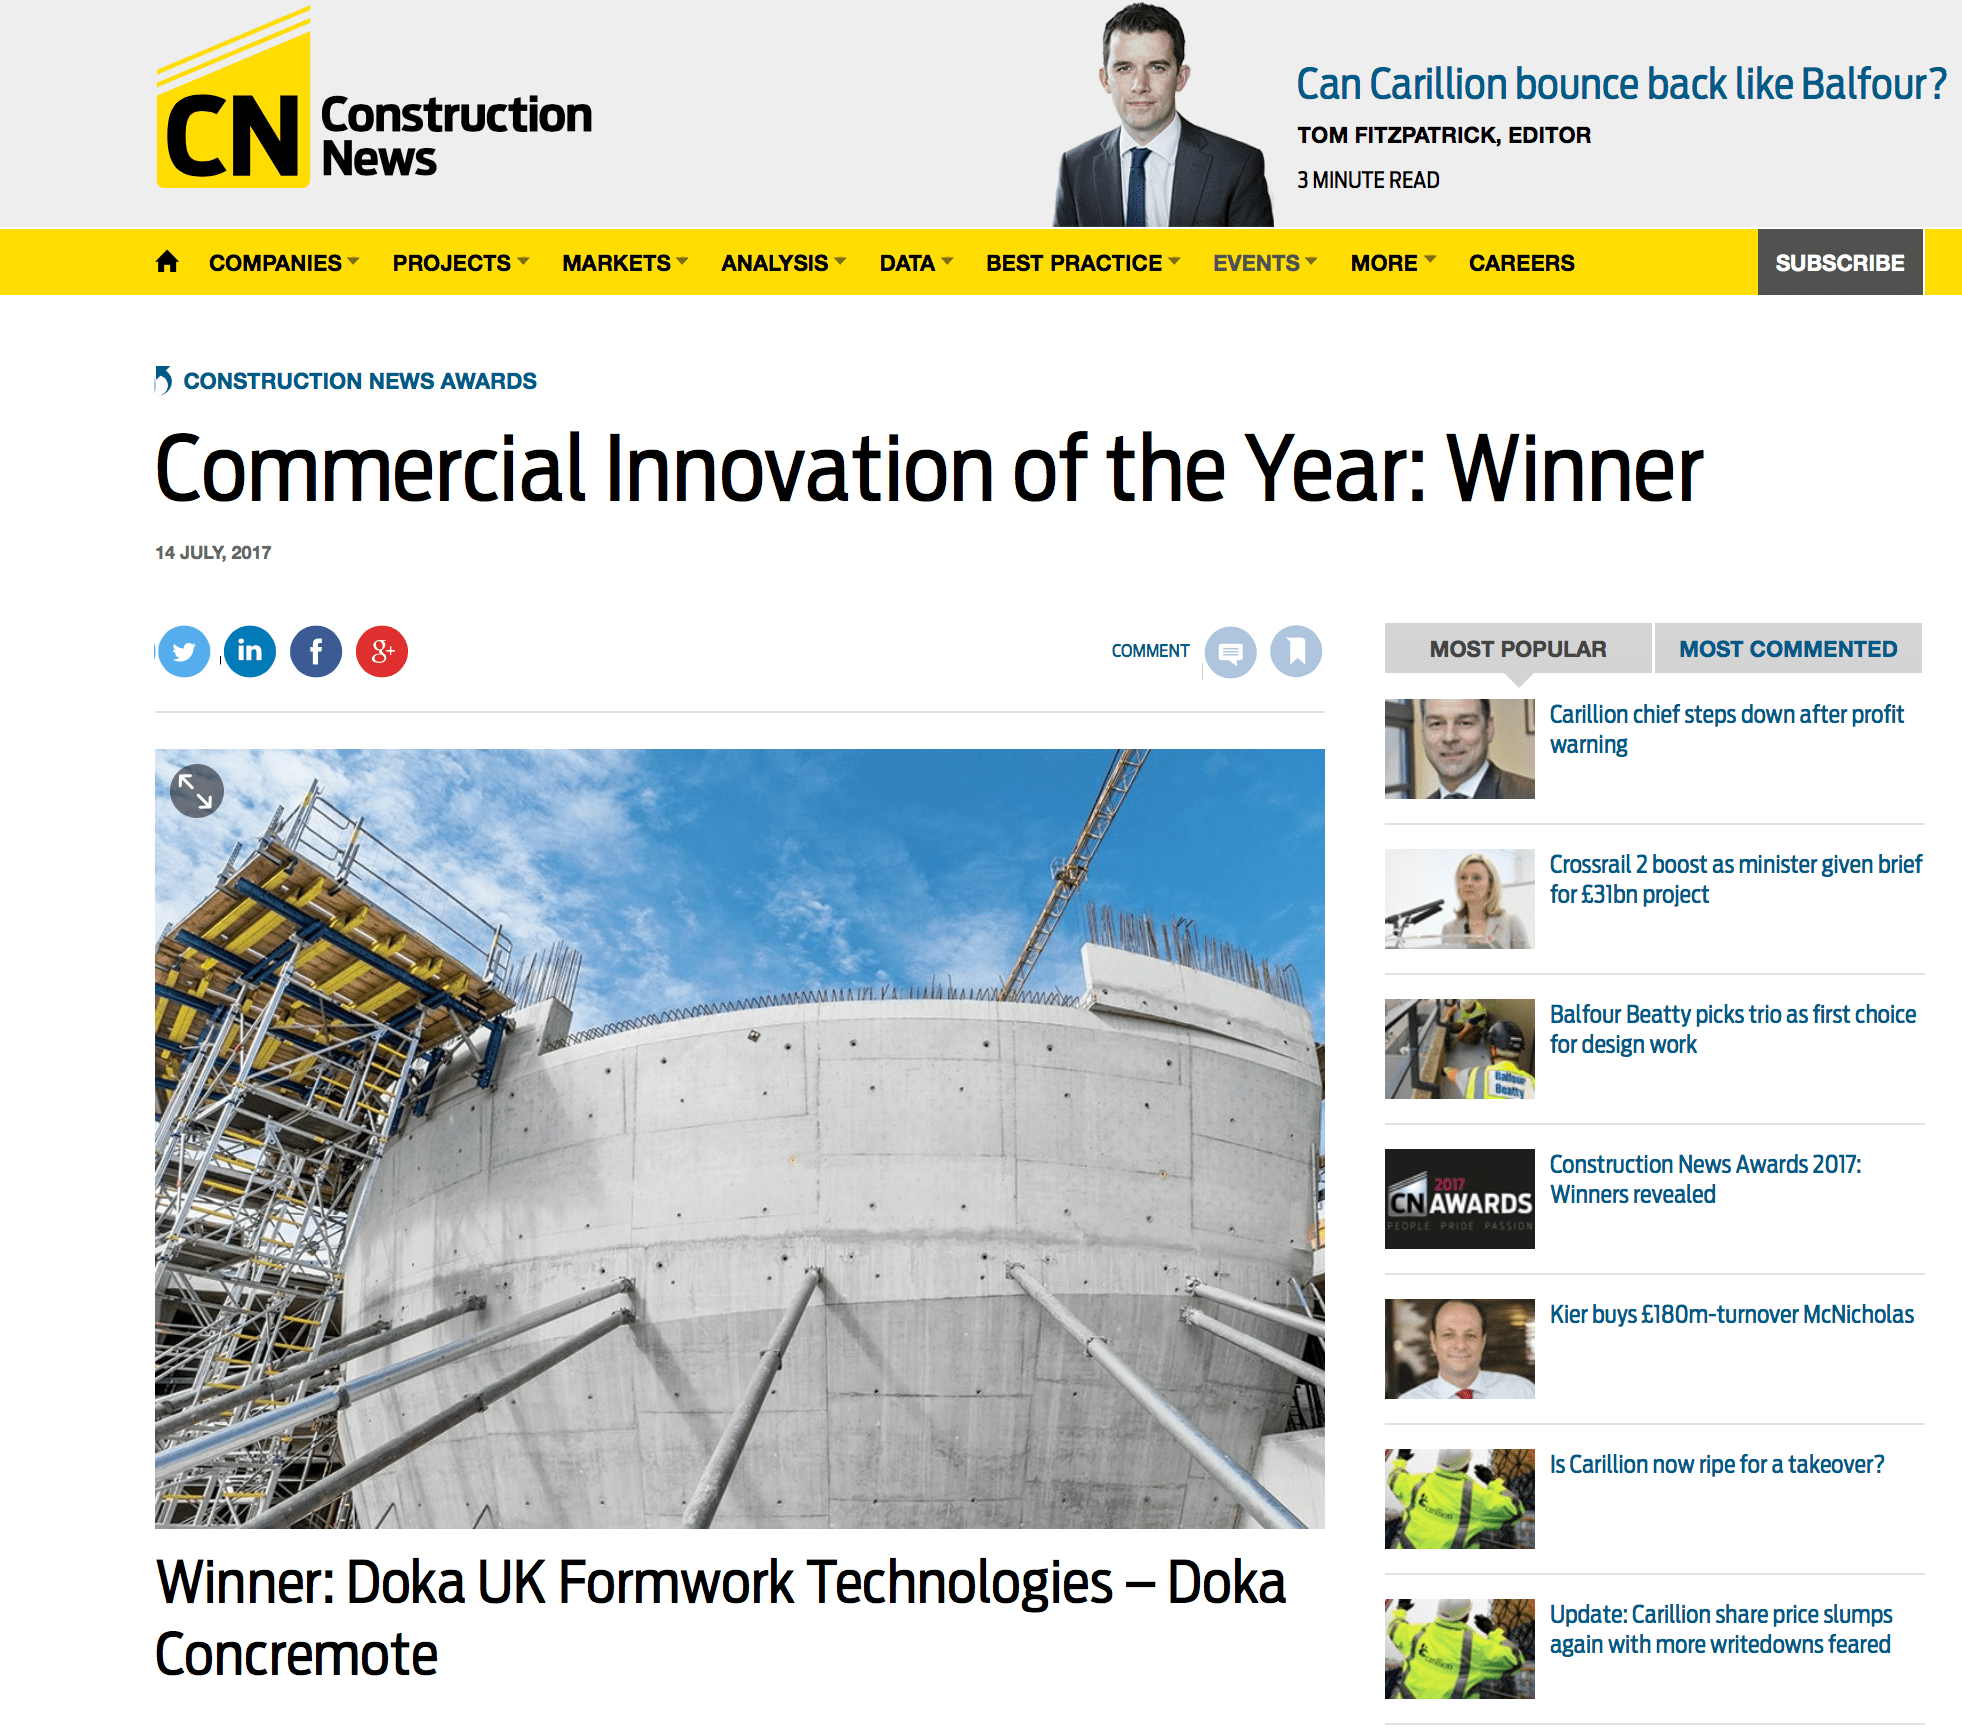 Winner: Doka UK Formwork Technologies – Doka Concremote